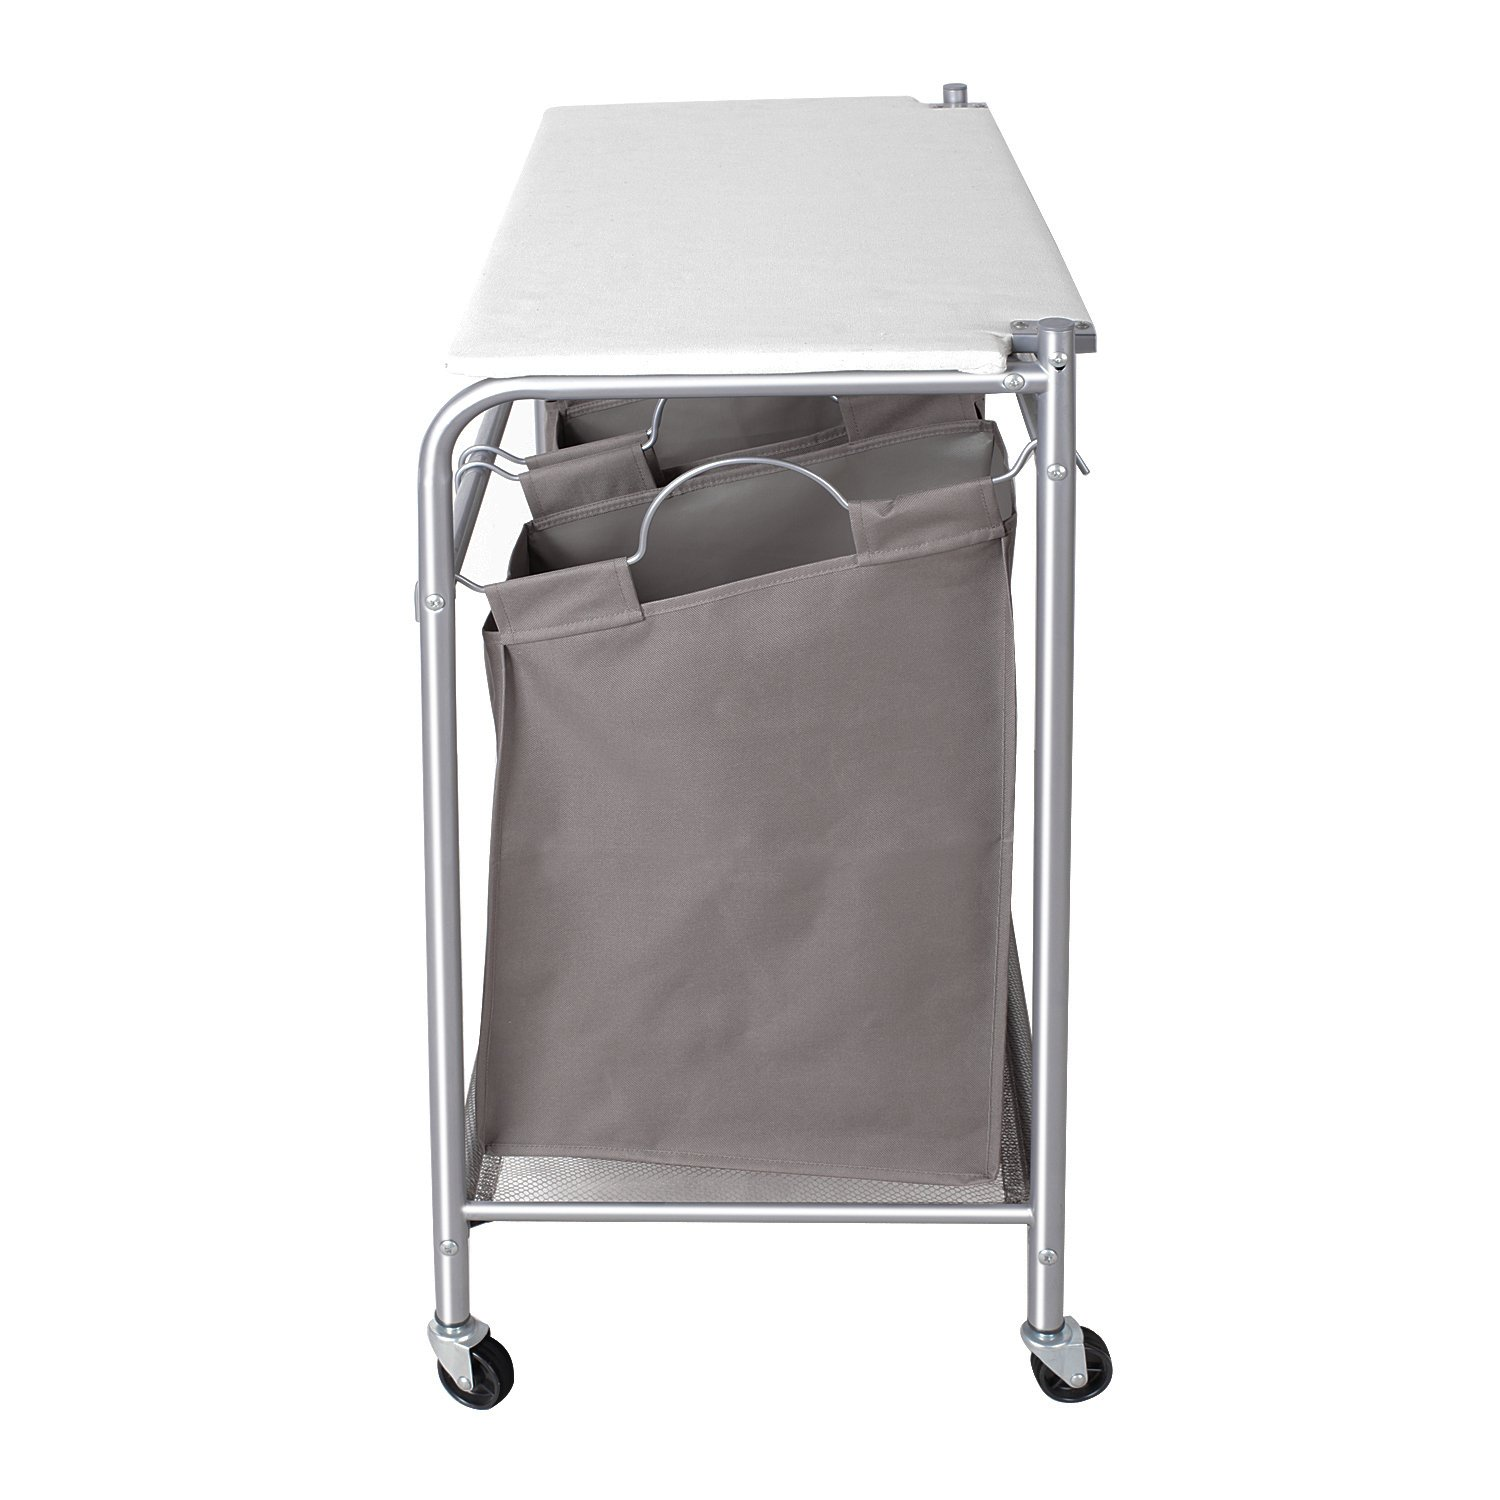 storagemaniac 3 lift off bags laundry sorter cart with foldable ironing board ebay. Black Bedroom Furniture Sets. Home Design Ideas